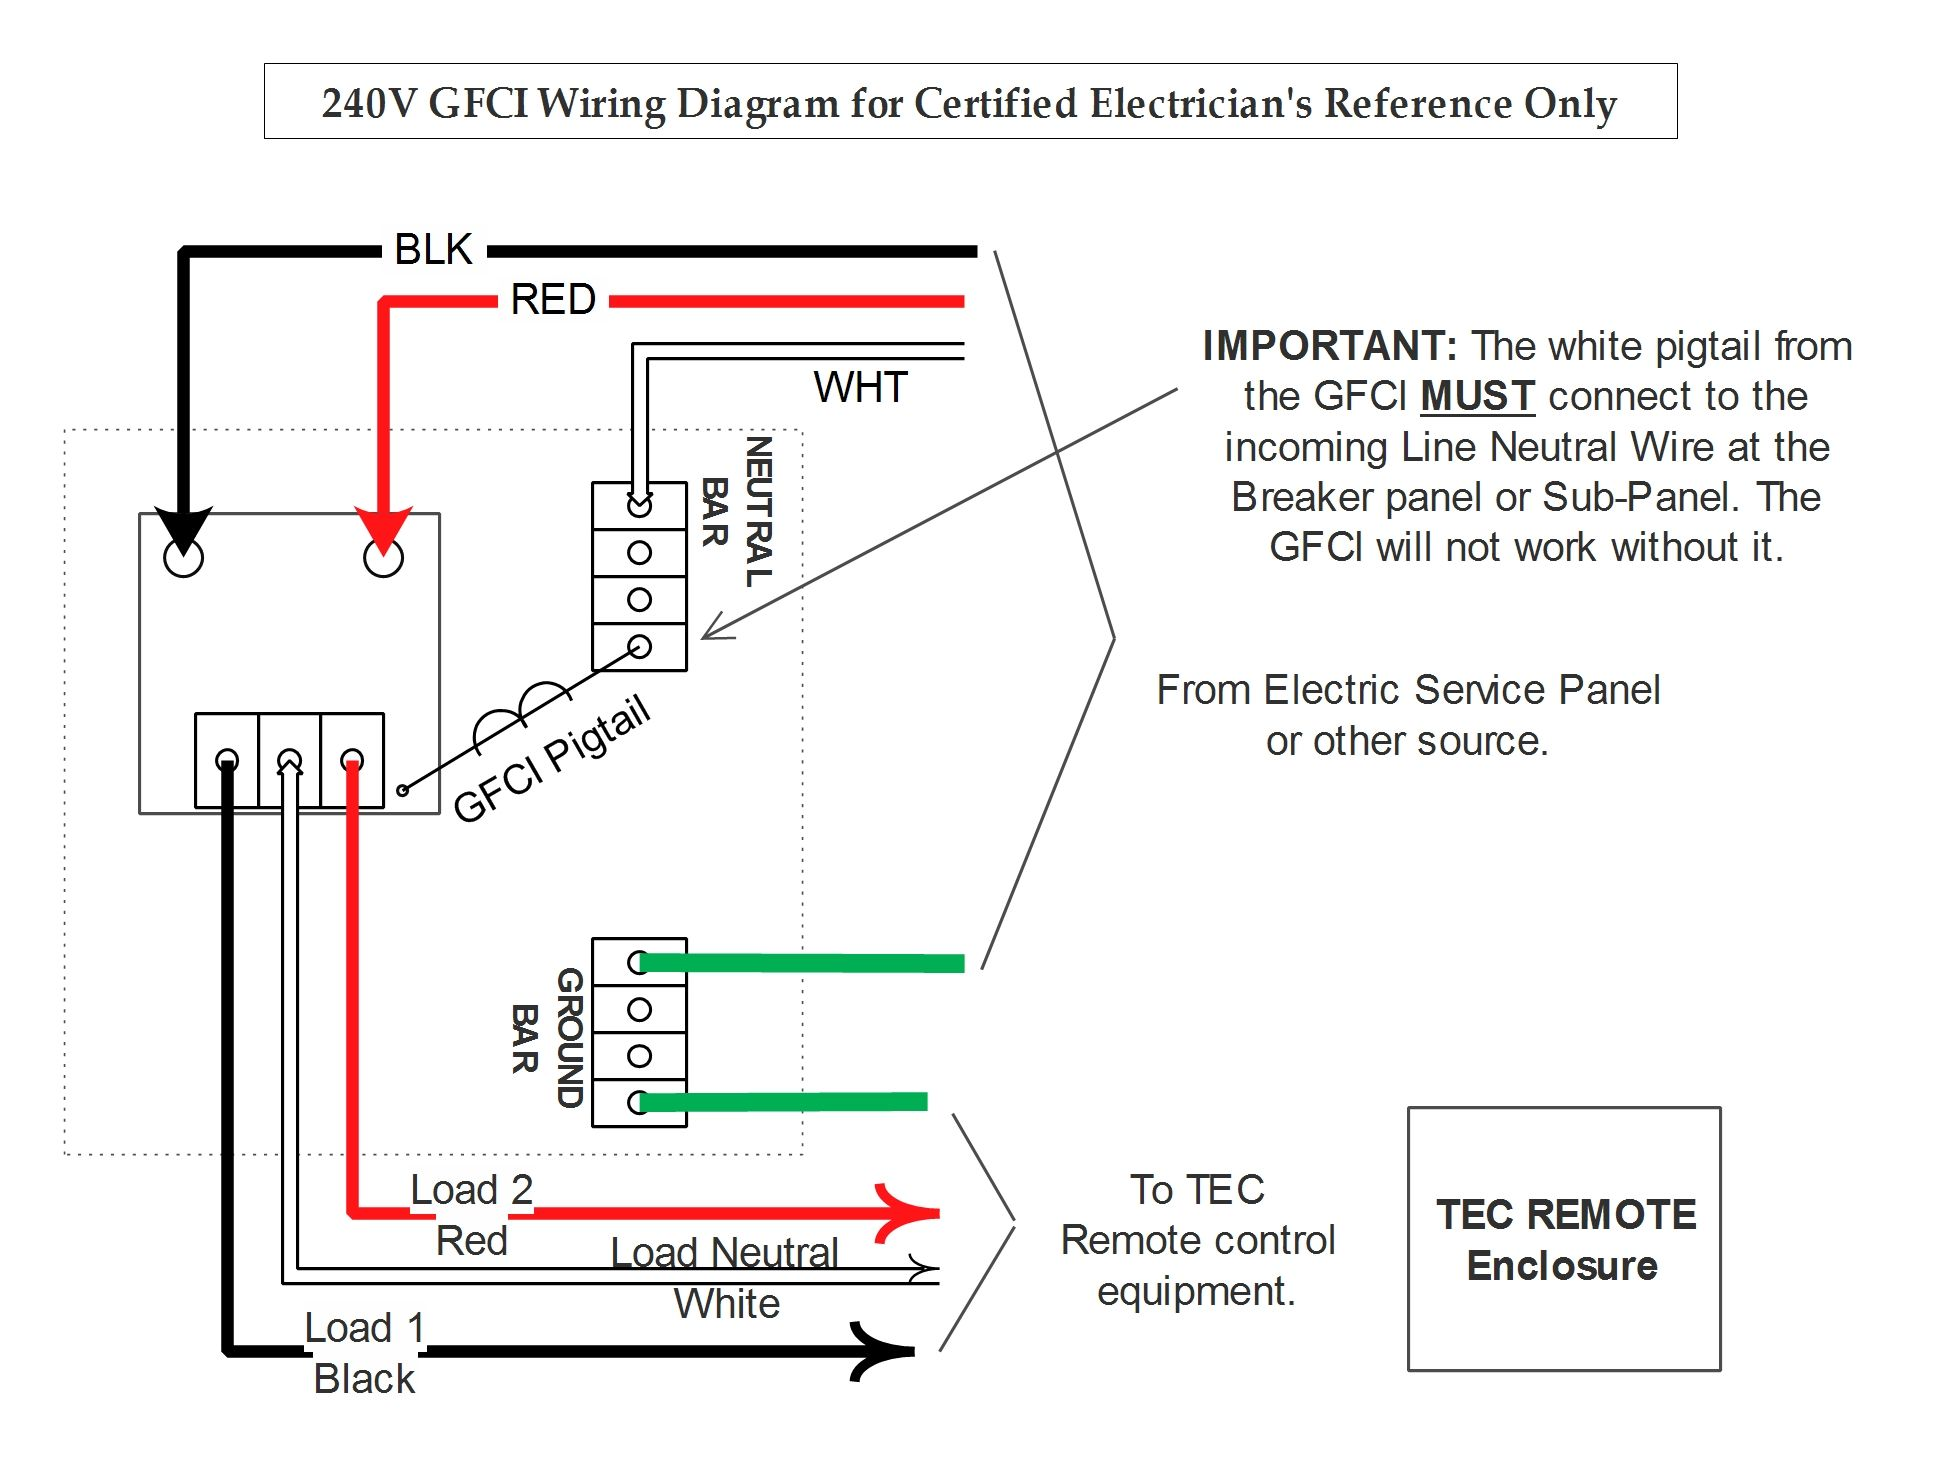 220 volt 3 phase motor wiring diagram 2002 mitsubishi lancer fuel pump and installation